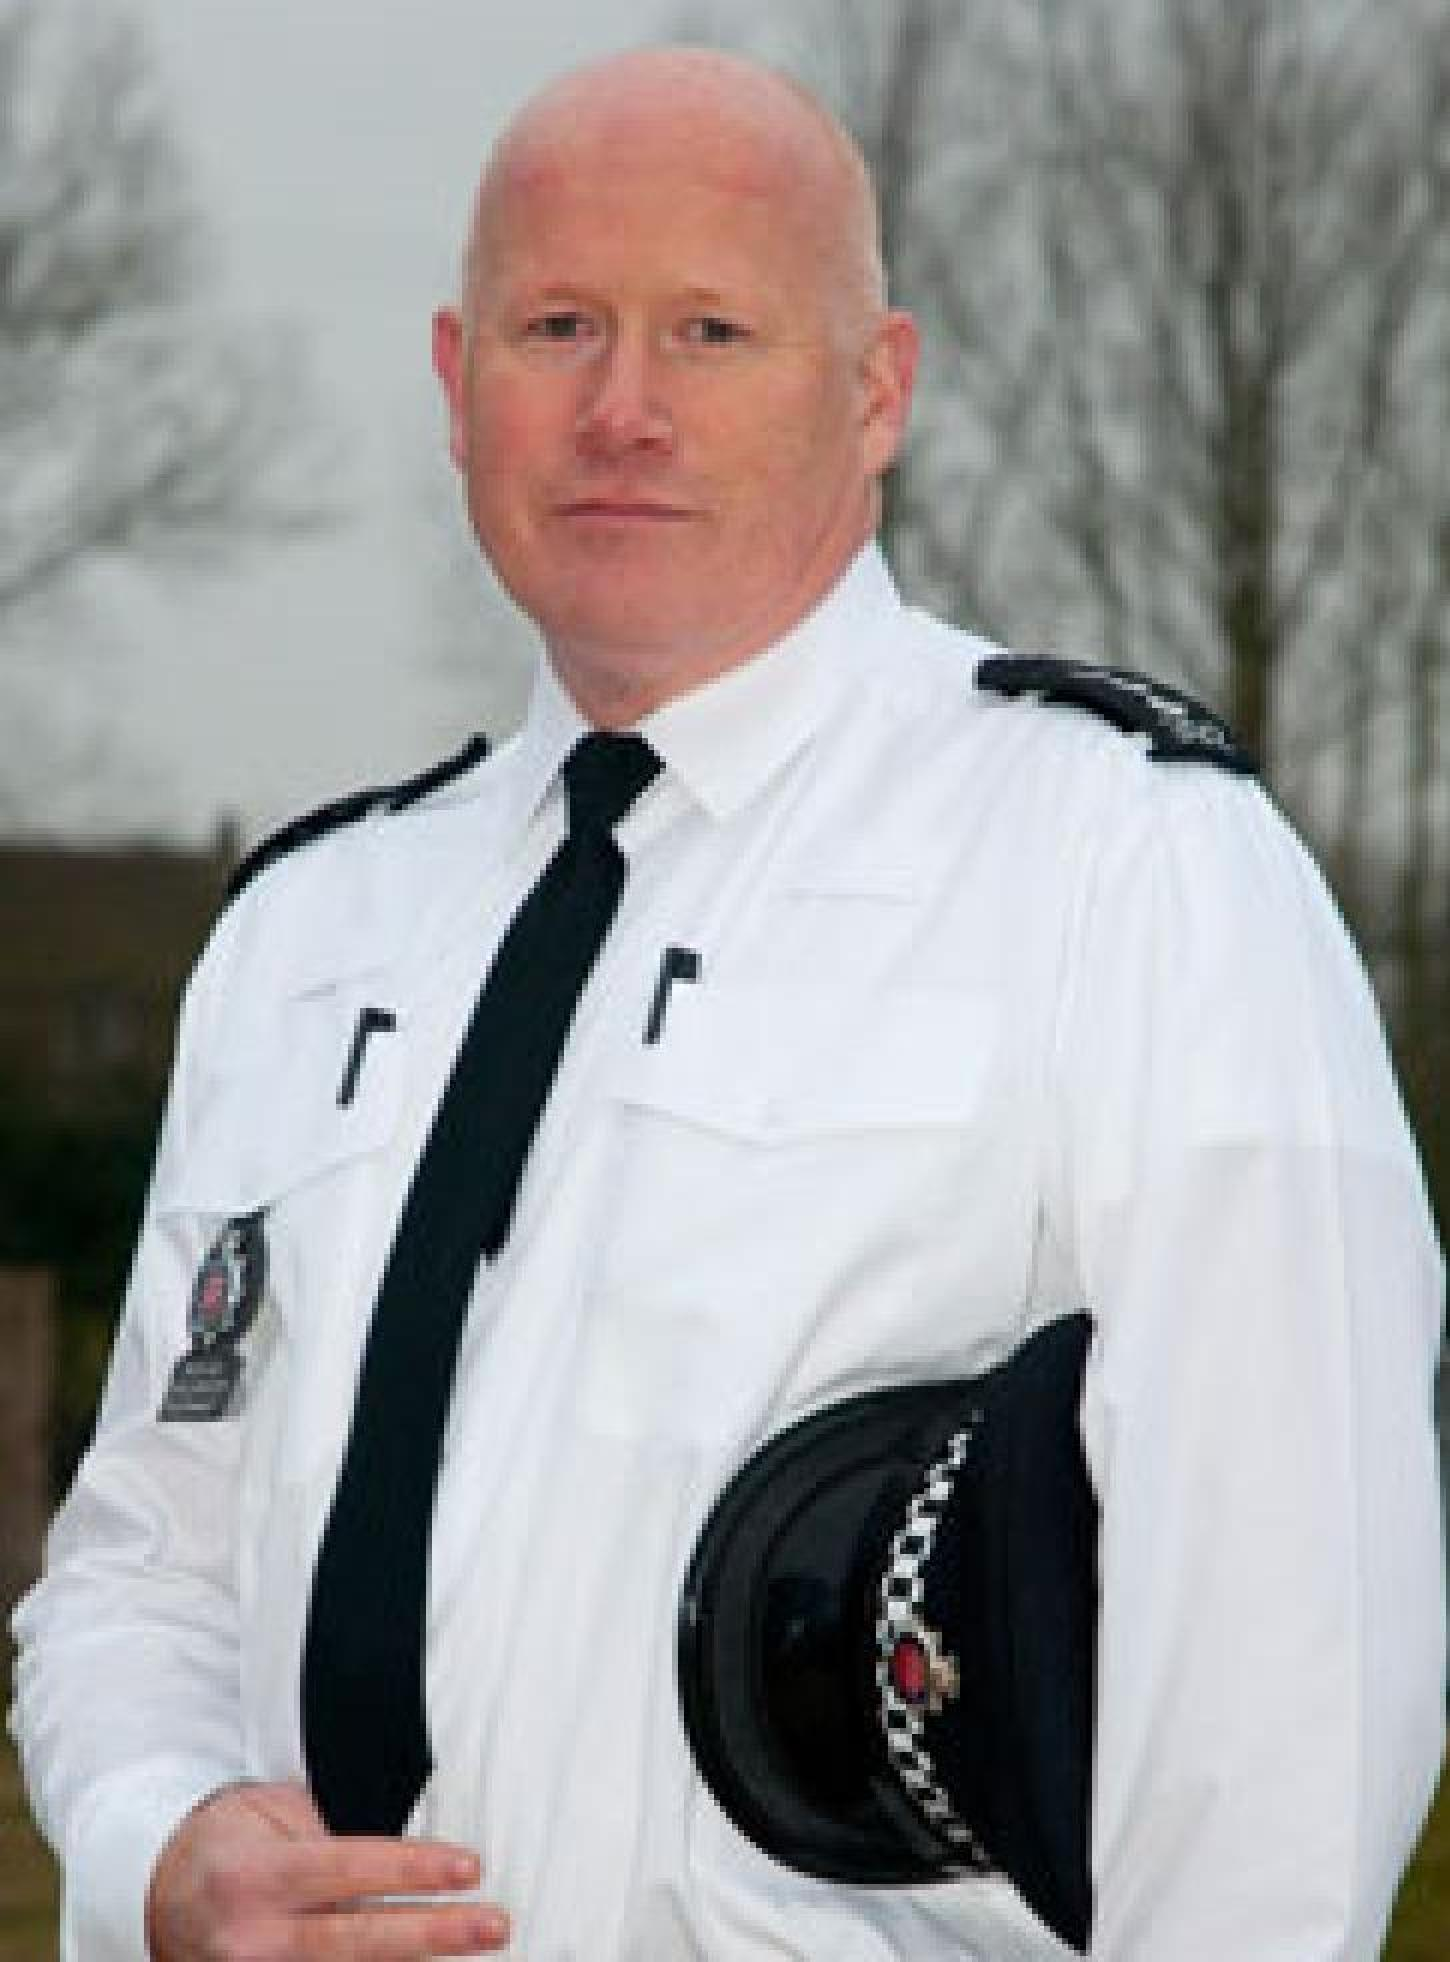 District Commander for Colchester Richard Phillibrown